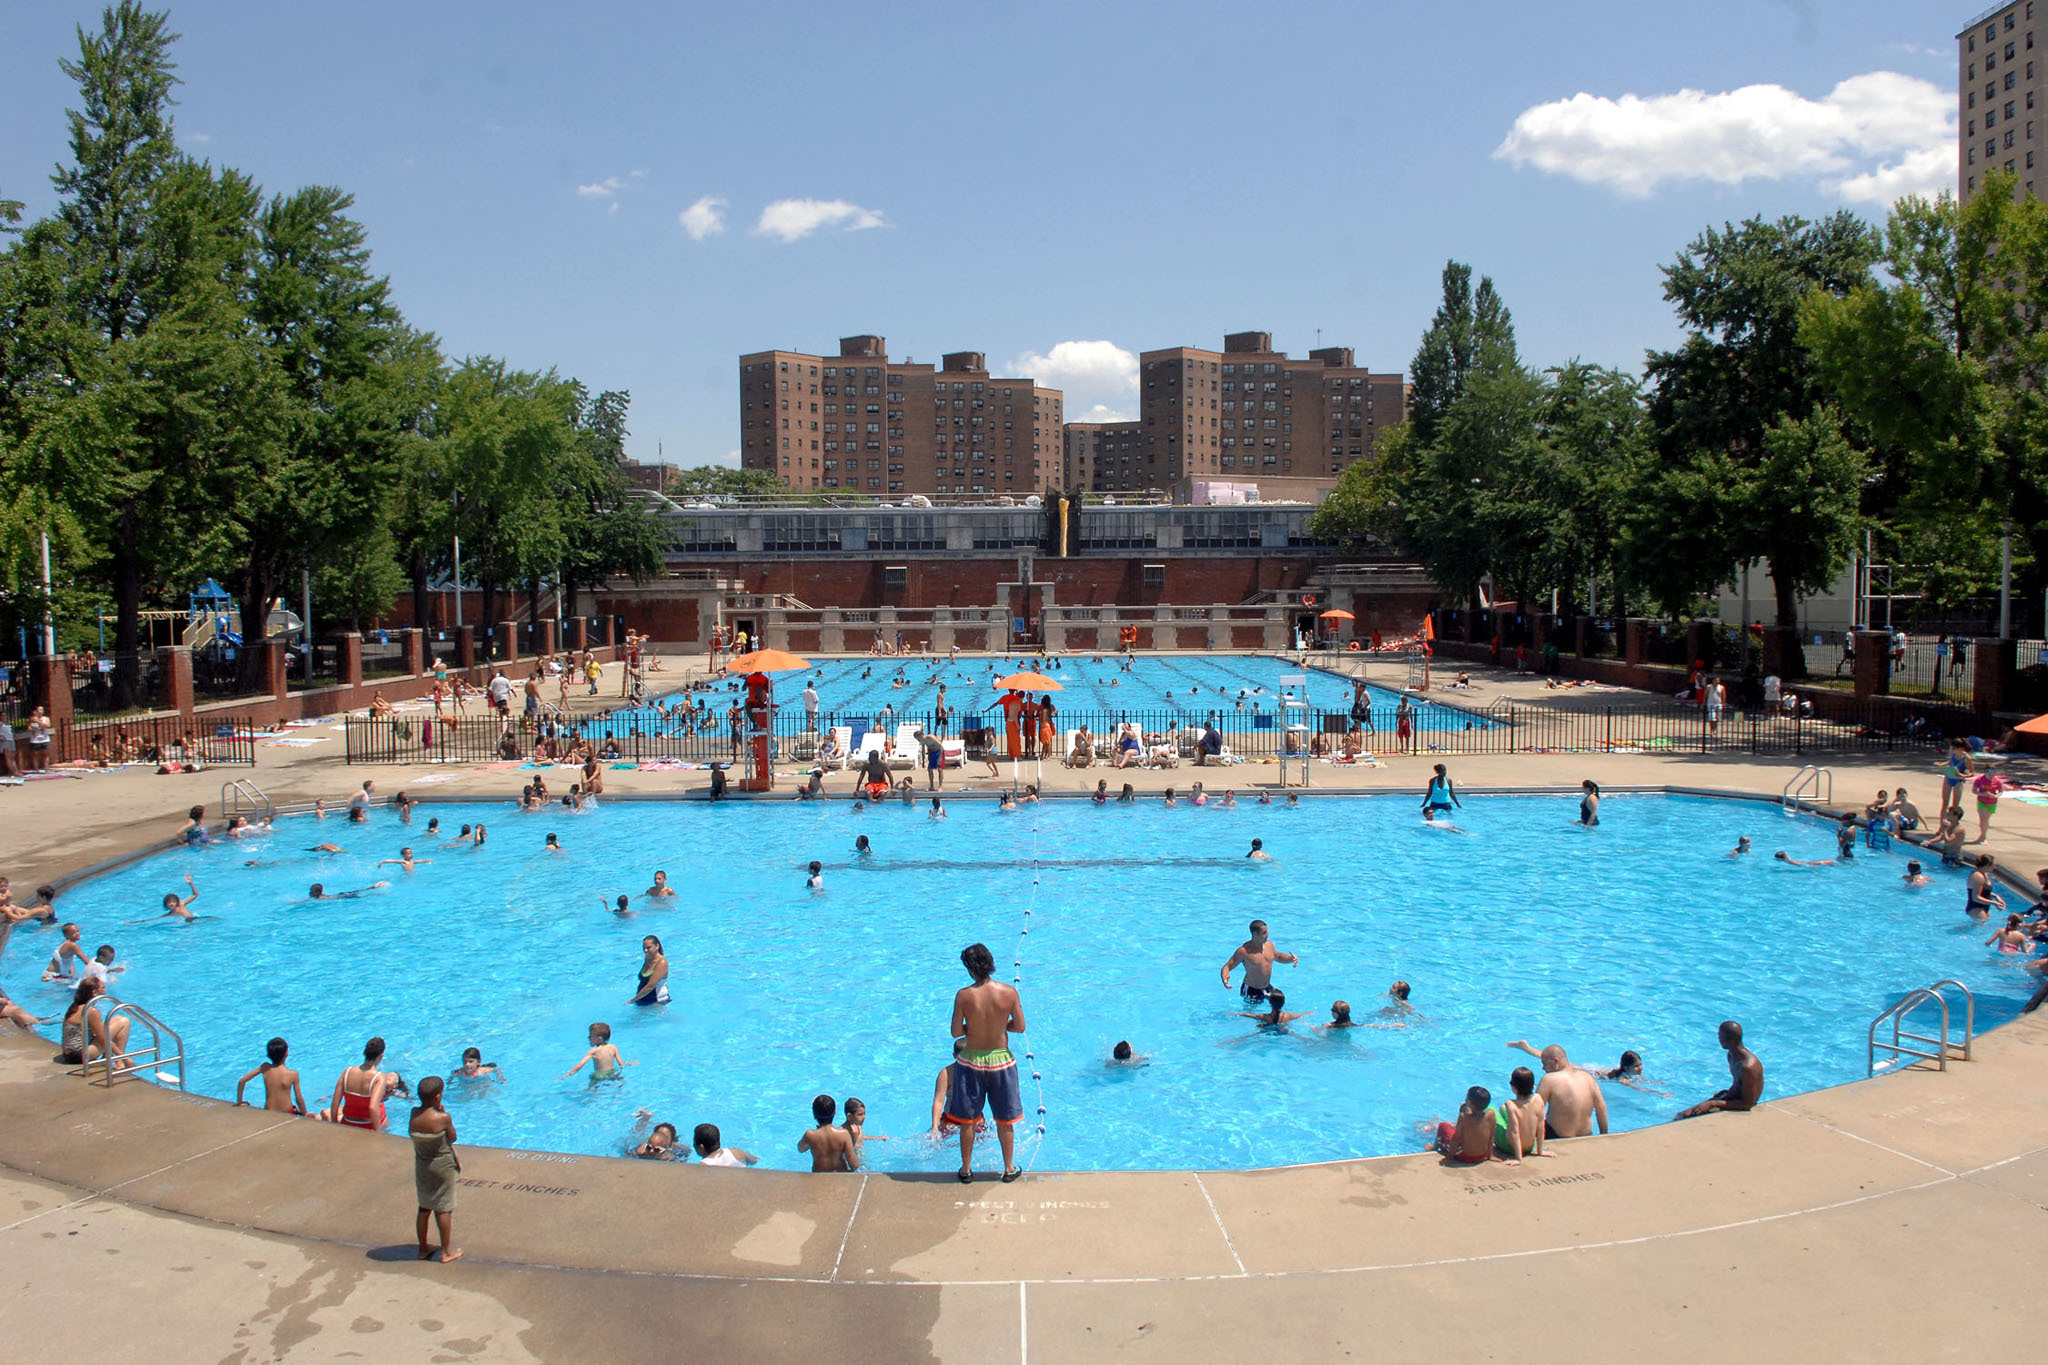 12 of the best public pools nyc has for swimming in summer for Community swimming pools near me